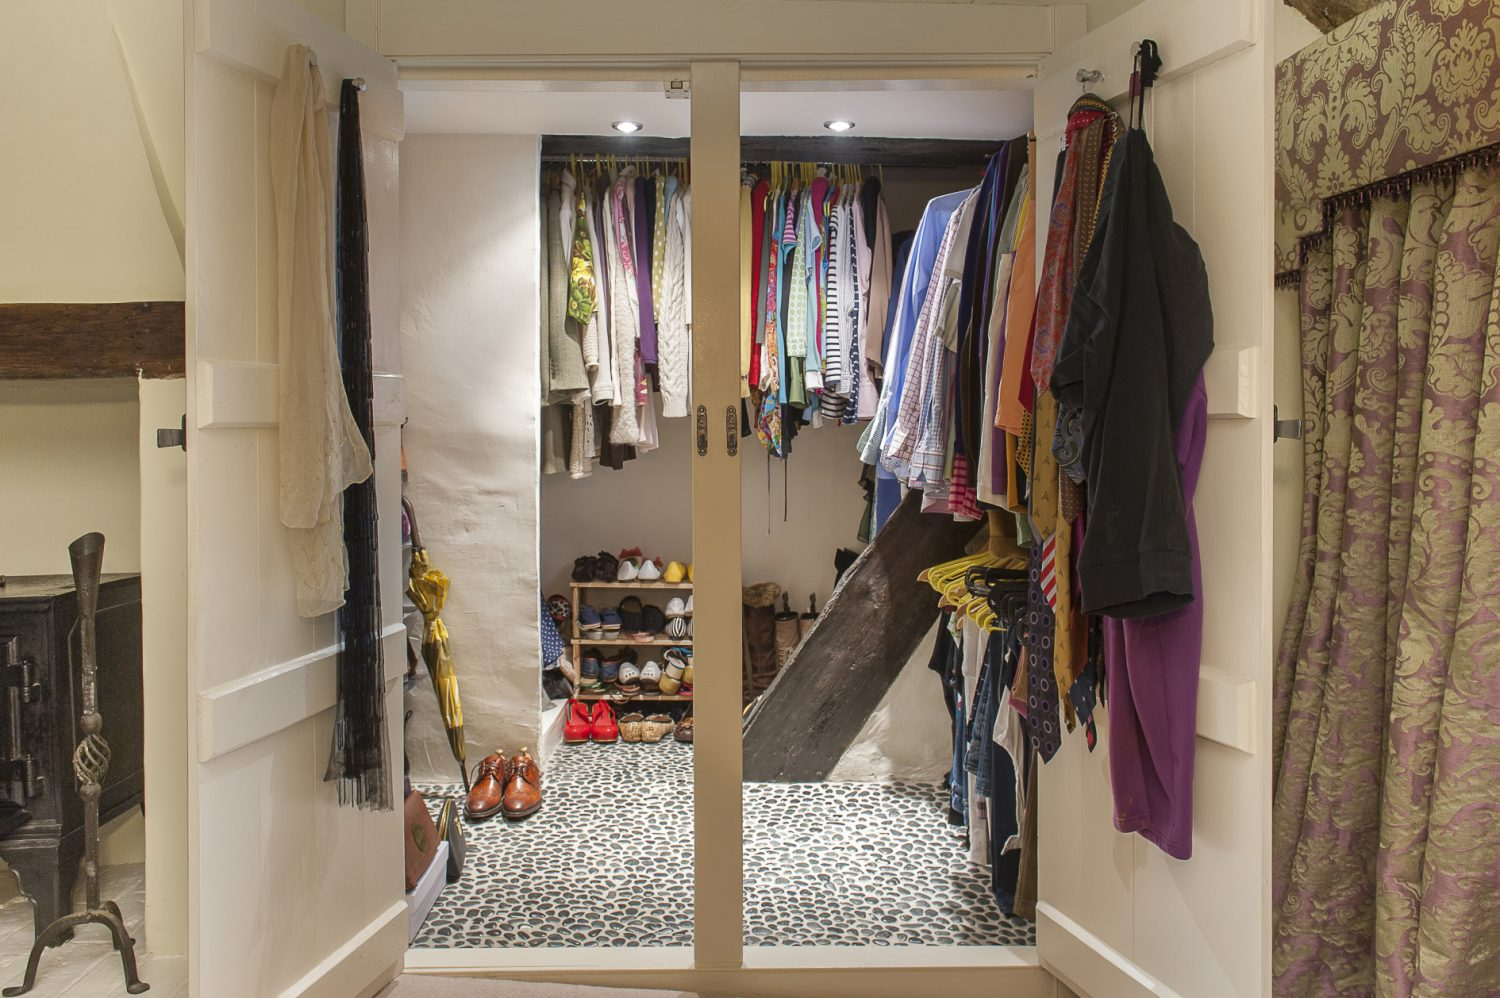 Sarah used a darker version of the pebble flooring in the wet room for the couple's walk-in wardrobe